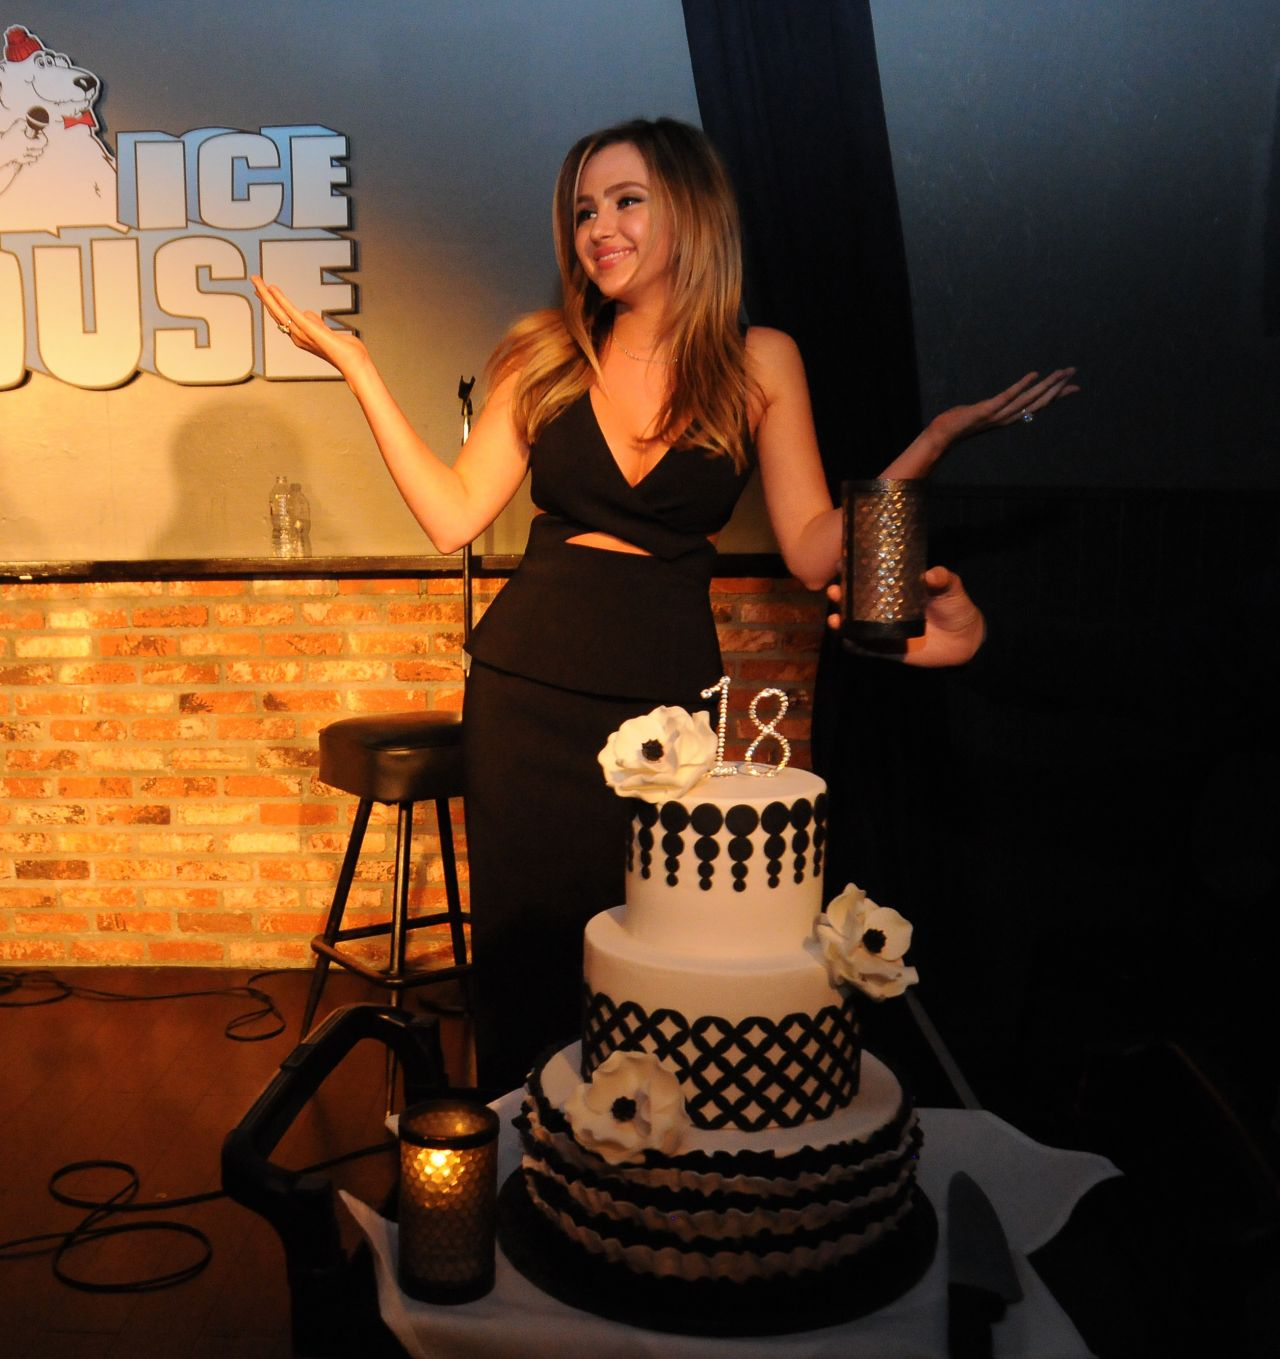 Ryan Newman 18th Birthday at the Ice House Comedy Club in Pasadena